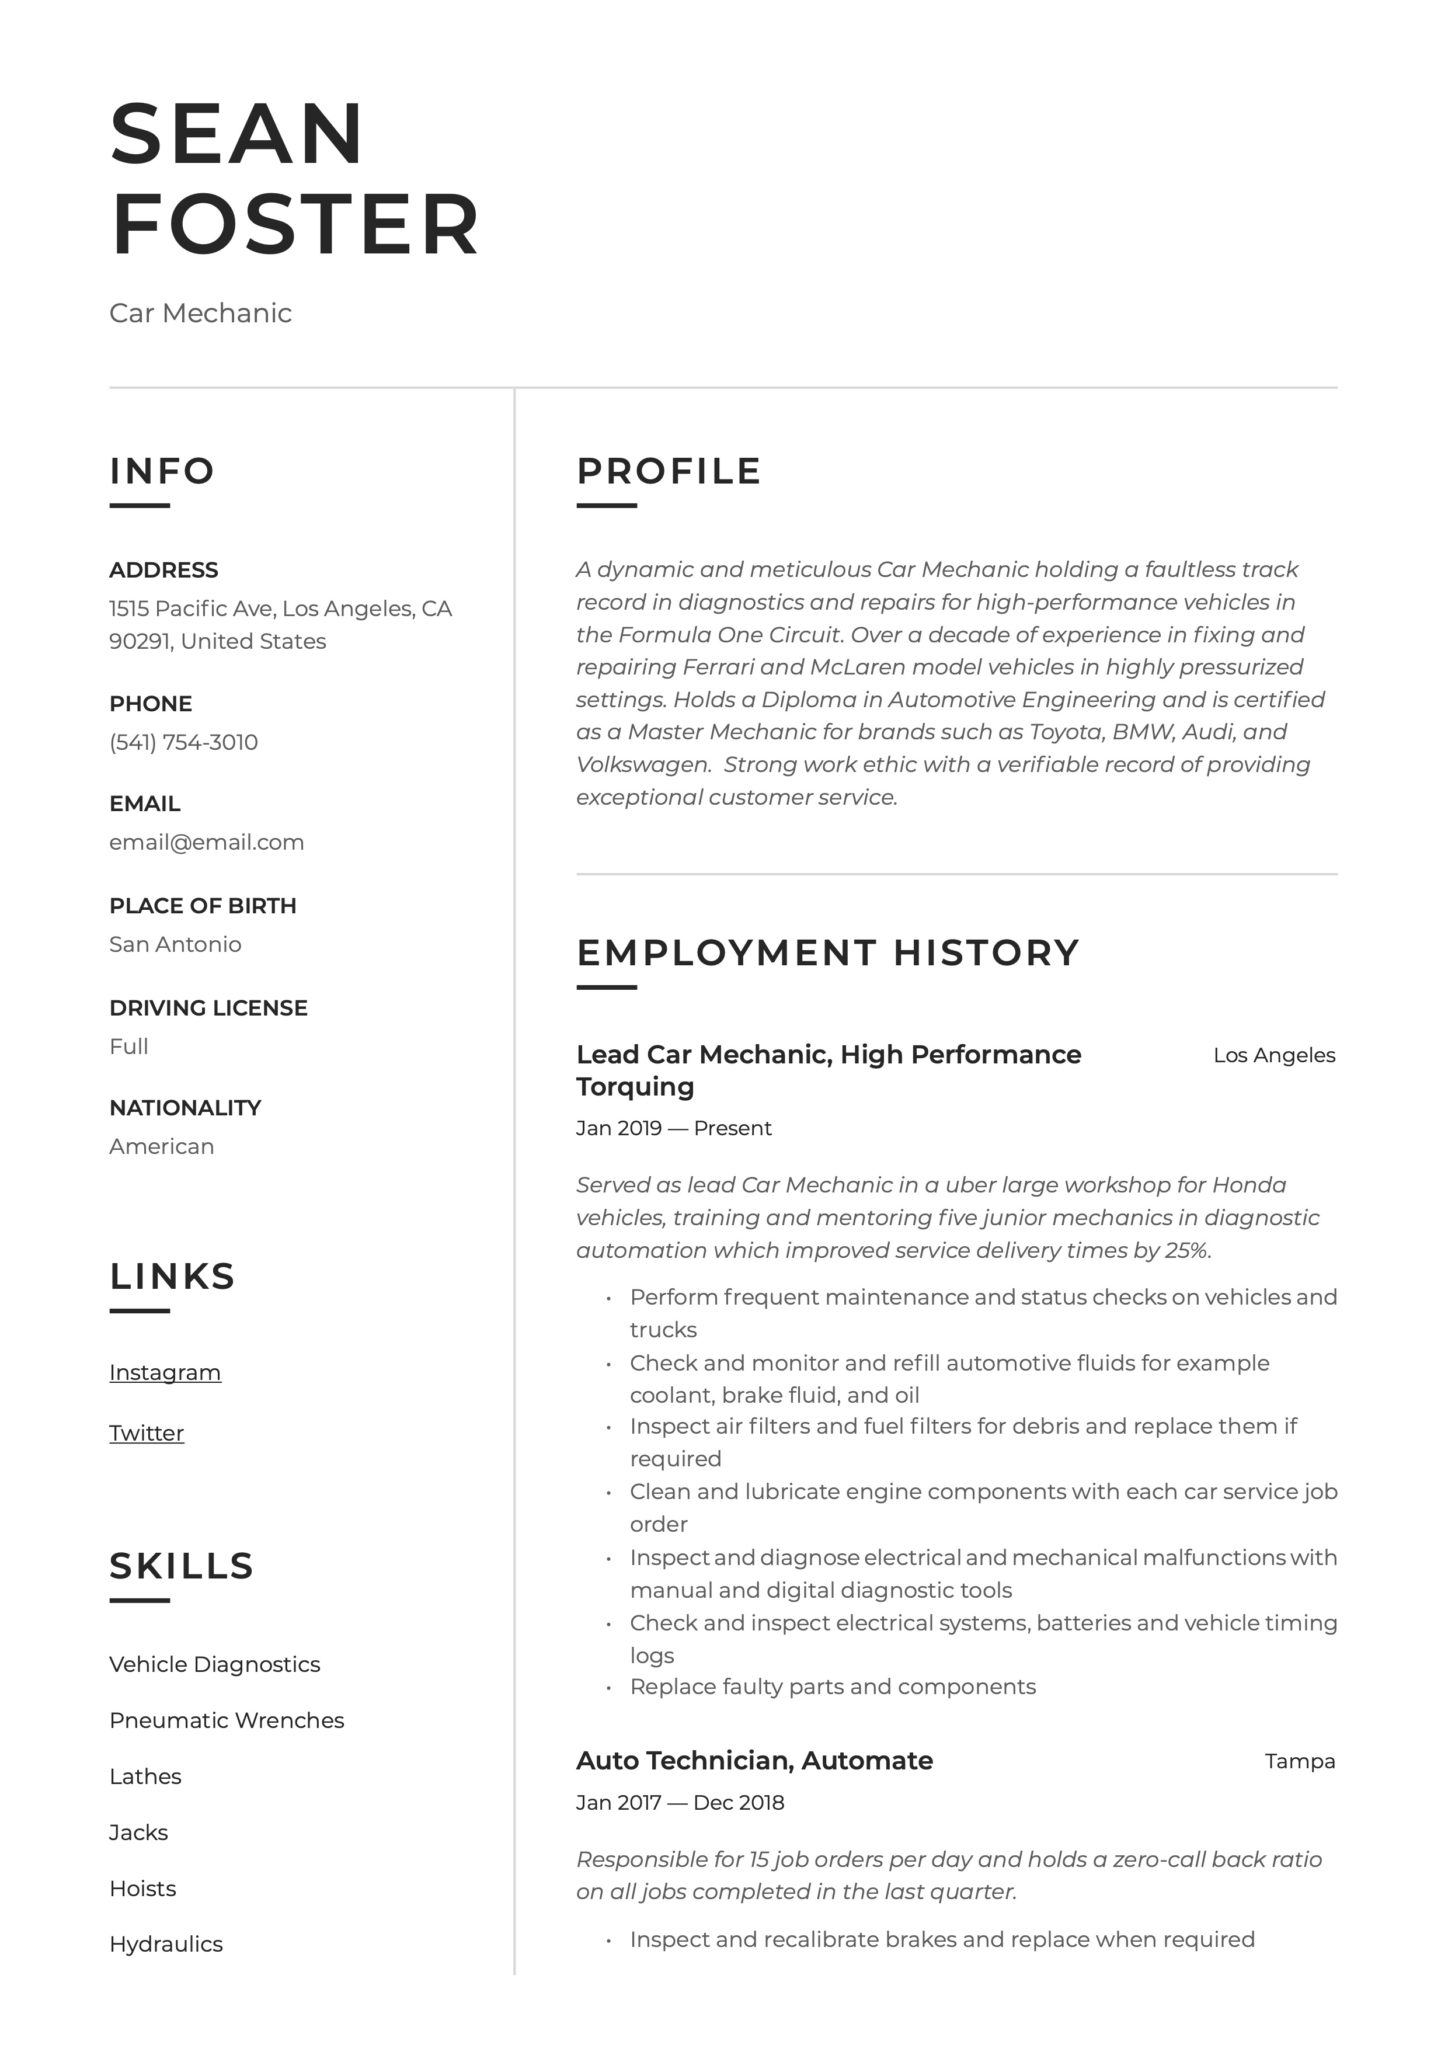 car mechanic resume guide examples automotive sample scaled lawyer tailoring services Resume Automotive Mechanic Resume Sample